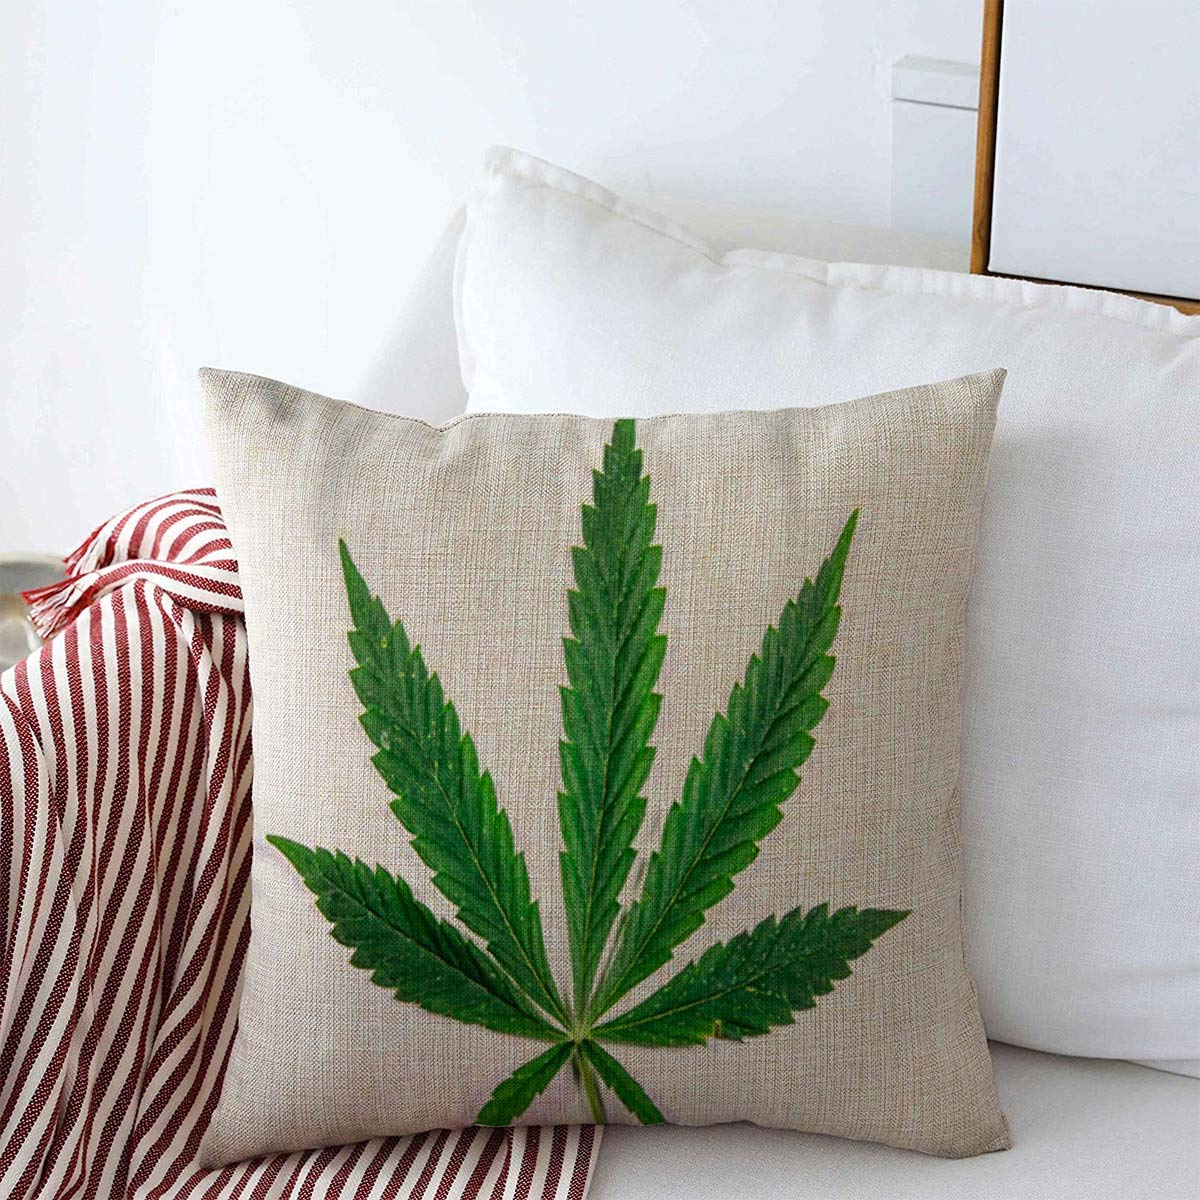 """Anmbsk Decorative Linen Throw Pillow Covers Hemp Green Addiction Leaf Cannabis Plant White Abuse Agriculture Alternative Botany Cancer Marihuana 18"""" x 18"""" Square Cushion Case for Home Decor"""